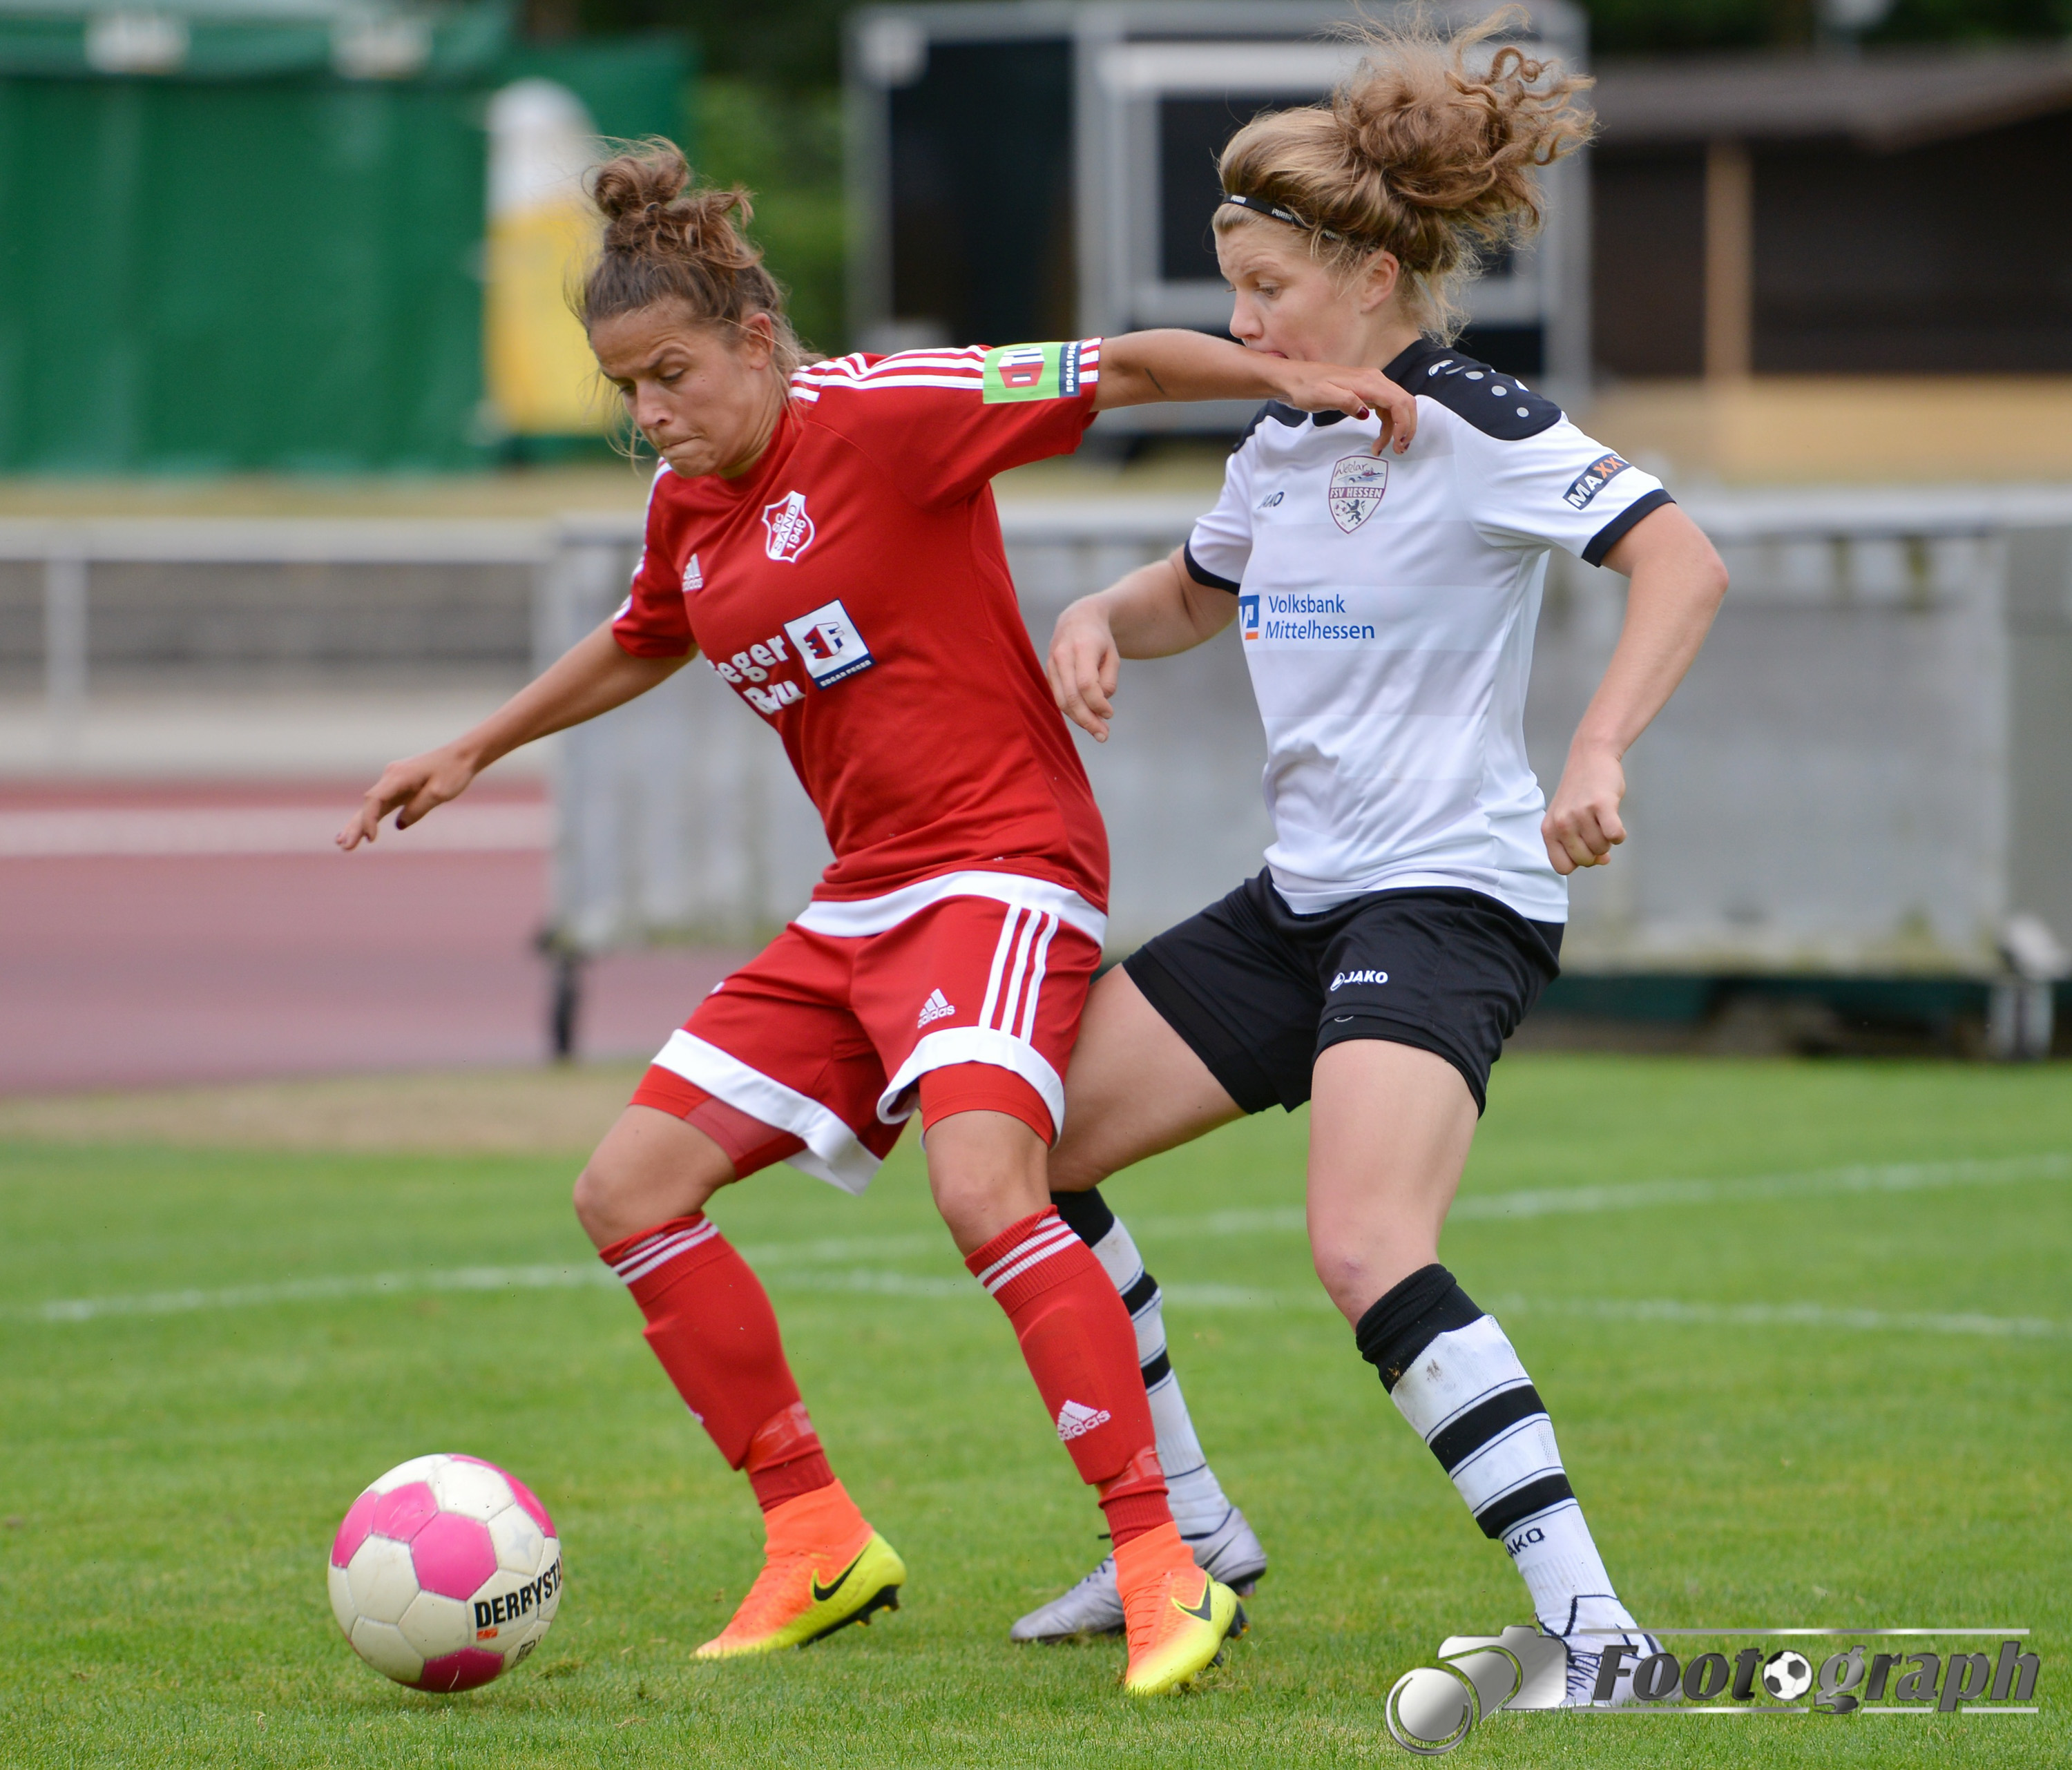 wetzlar women The live scores, predictions and tips of fsv hessen wetzlar women vs sg andernach women on 2017/12/14 are analysed deeply and displayed fully.